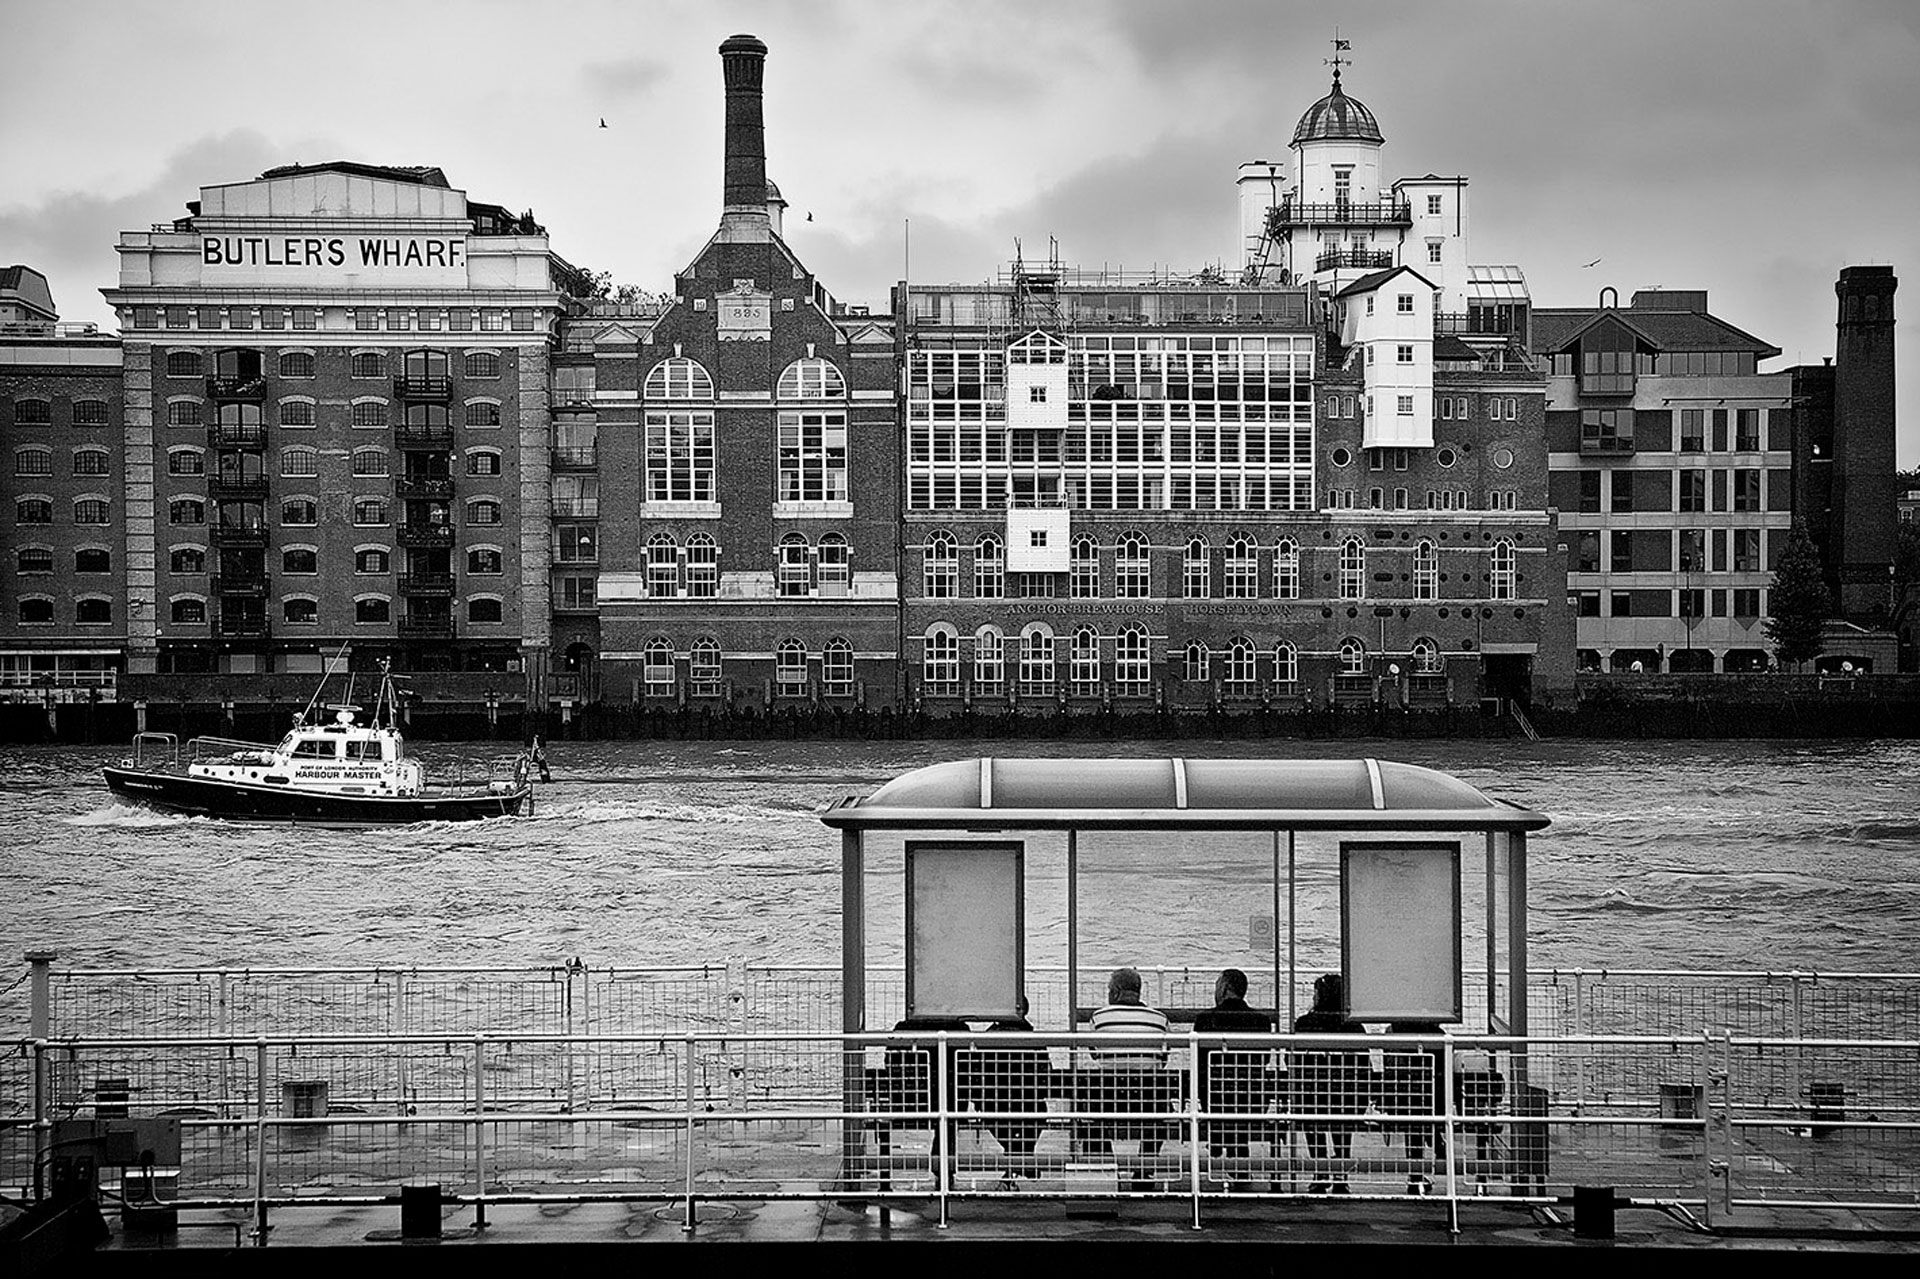 Image taken by Nikolay Mirchev on the shore of the river Thames in London near Tower Bridge